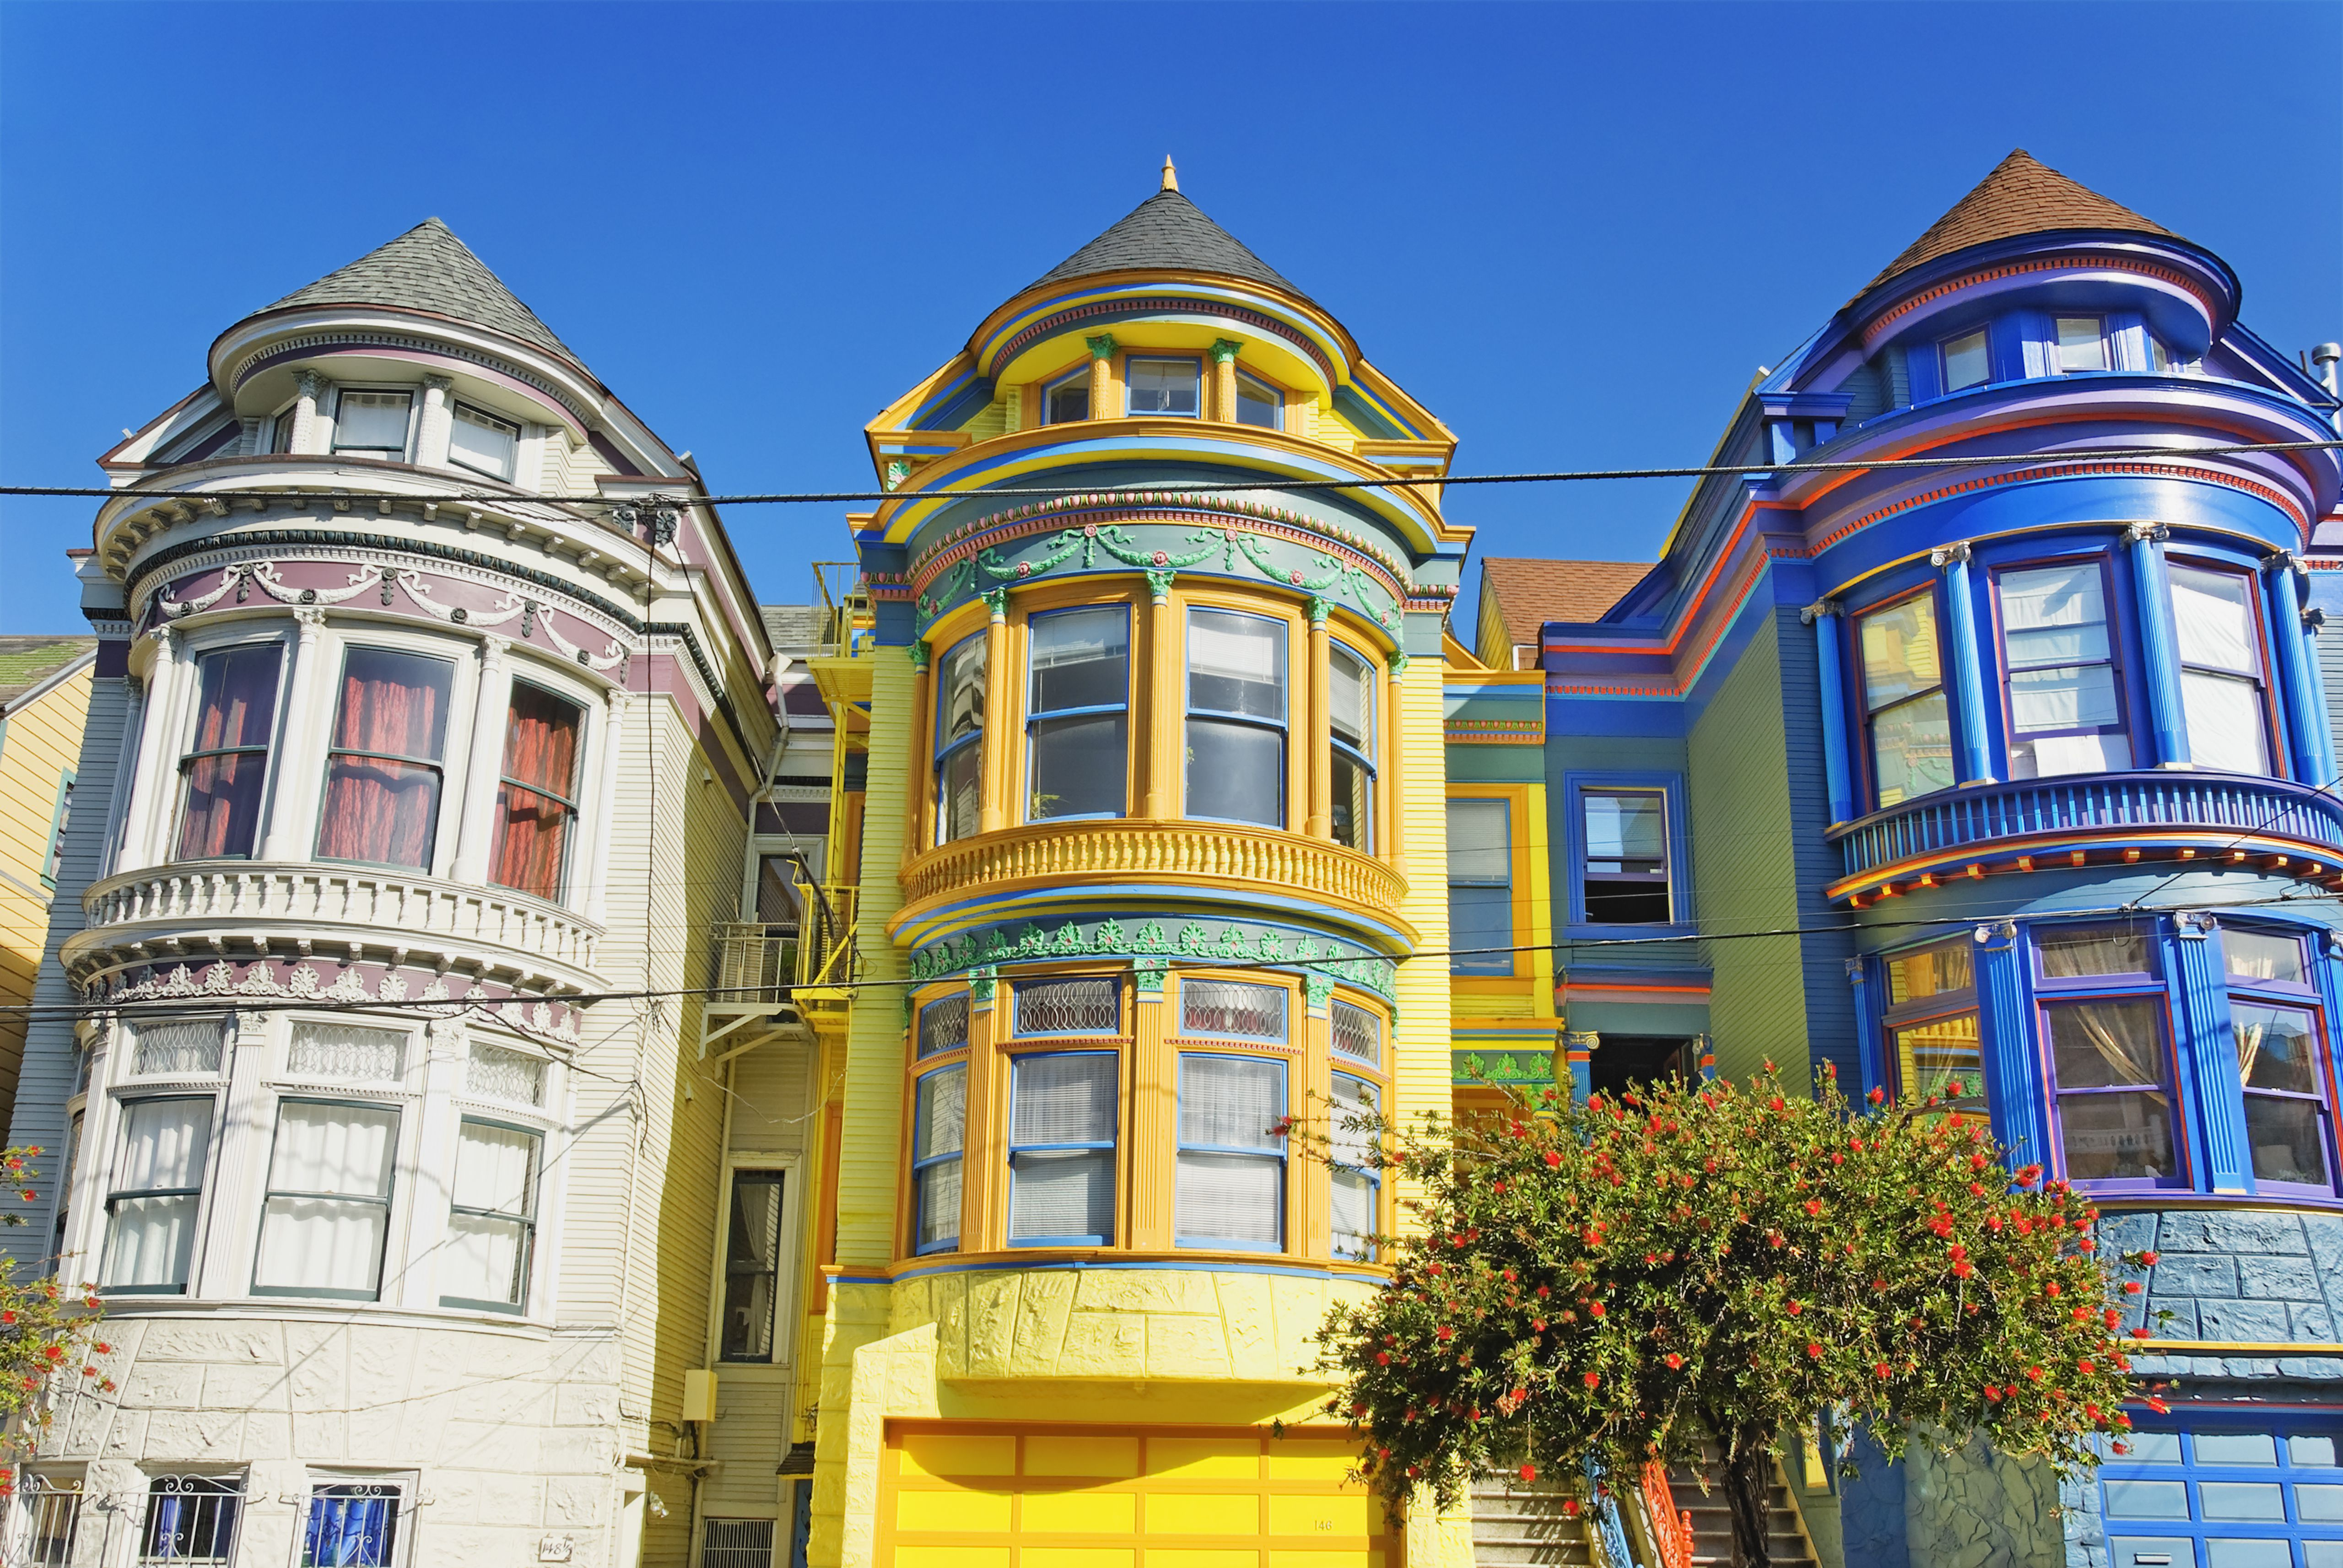 San francisco painted ladies victorian architecture Victorian house front